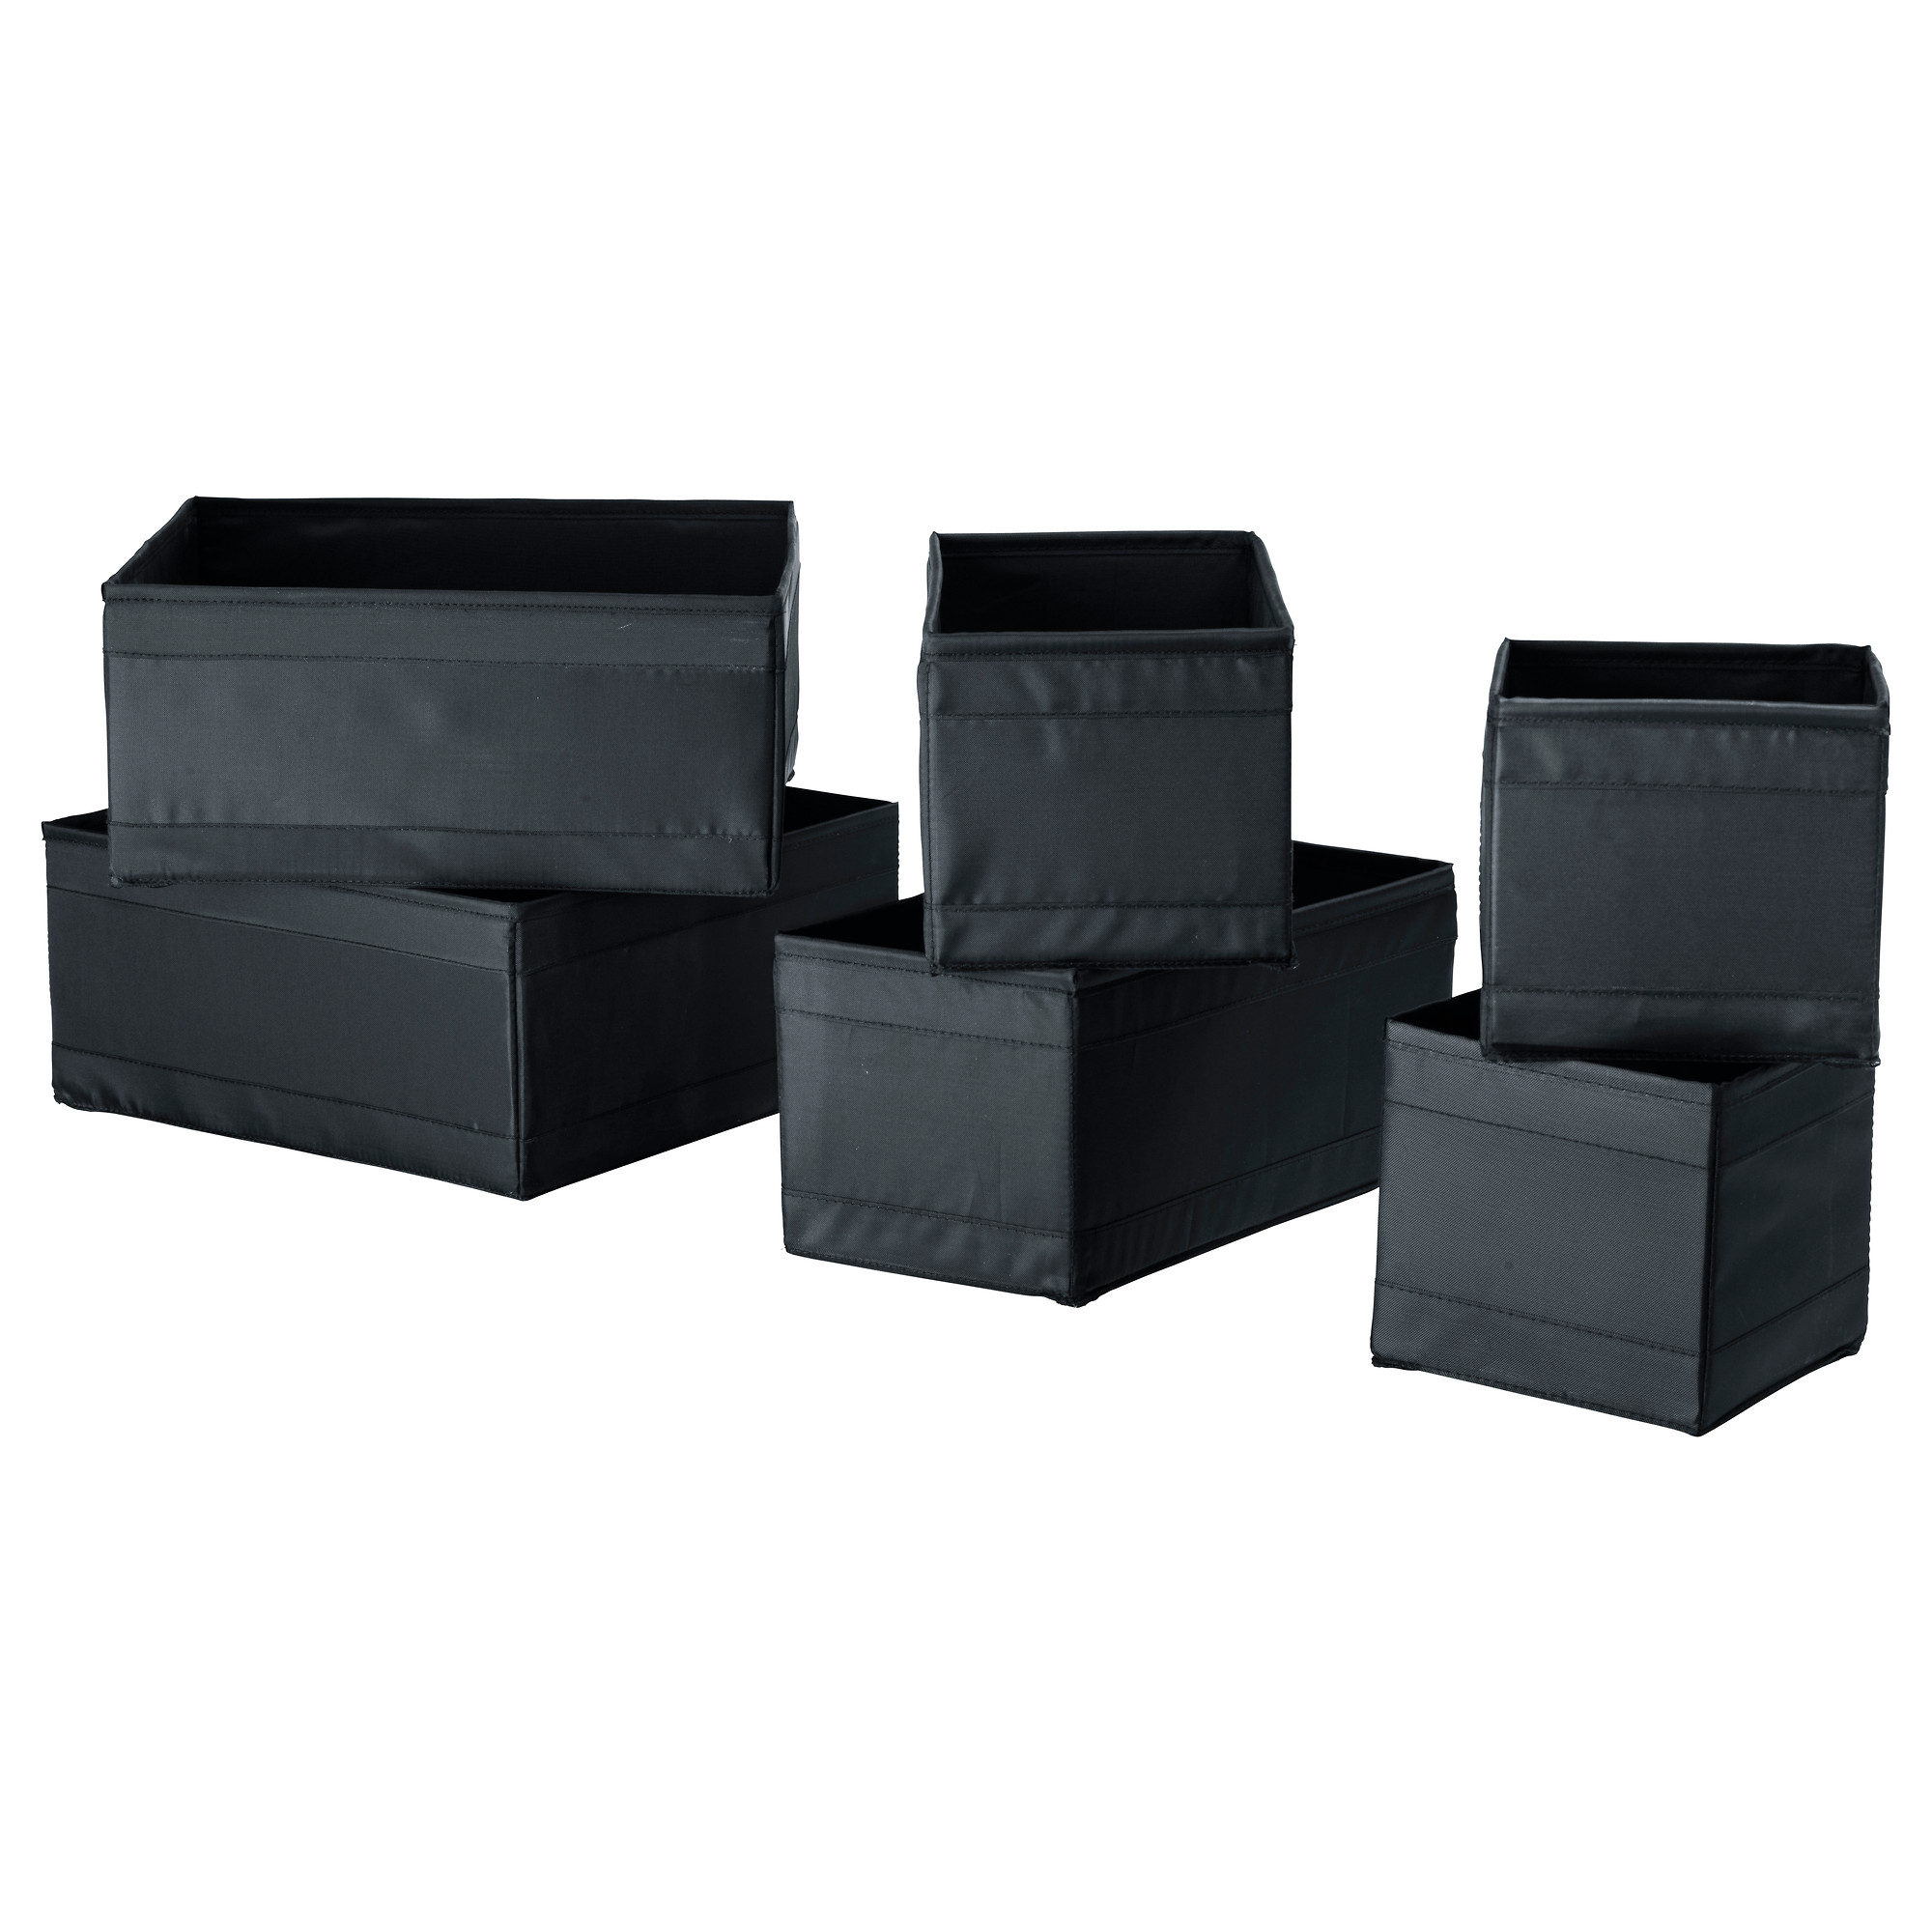 SKUBB Box set of 6 IKEA